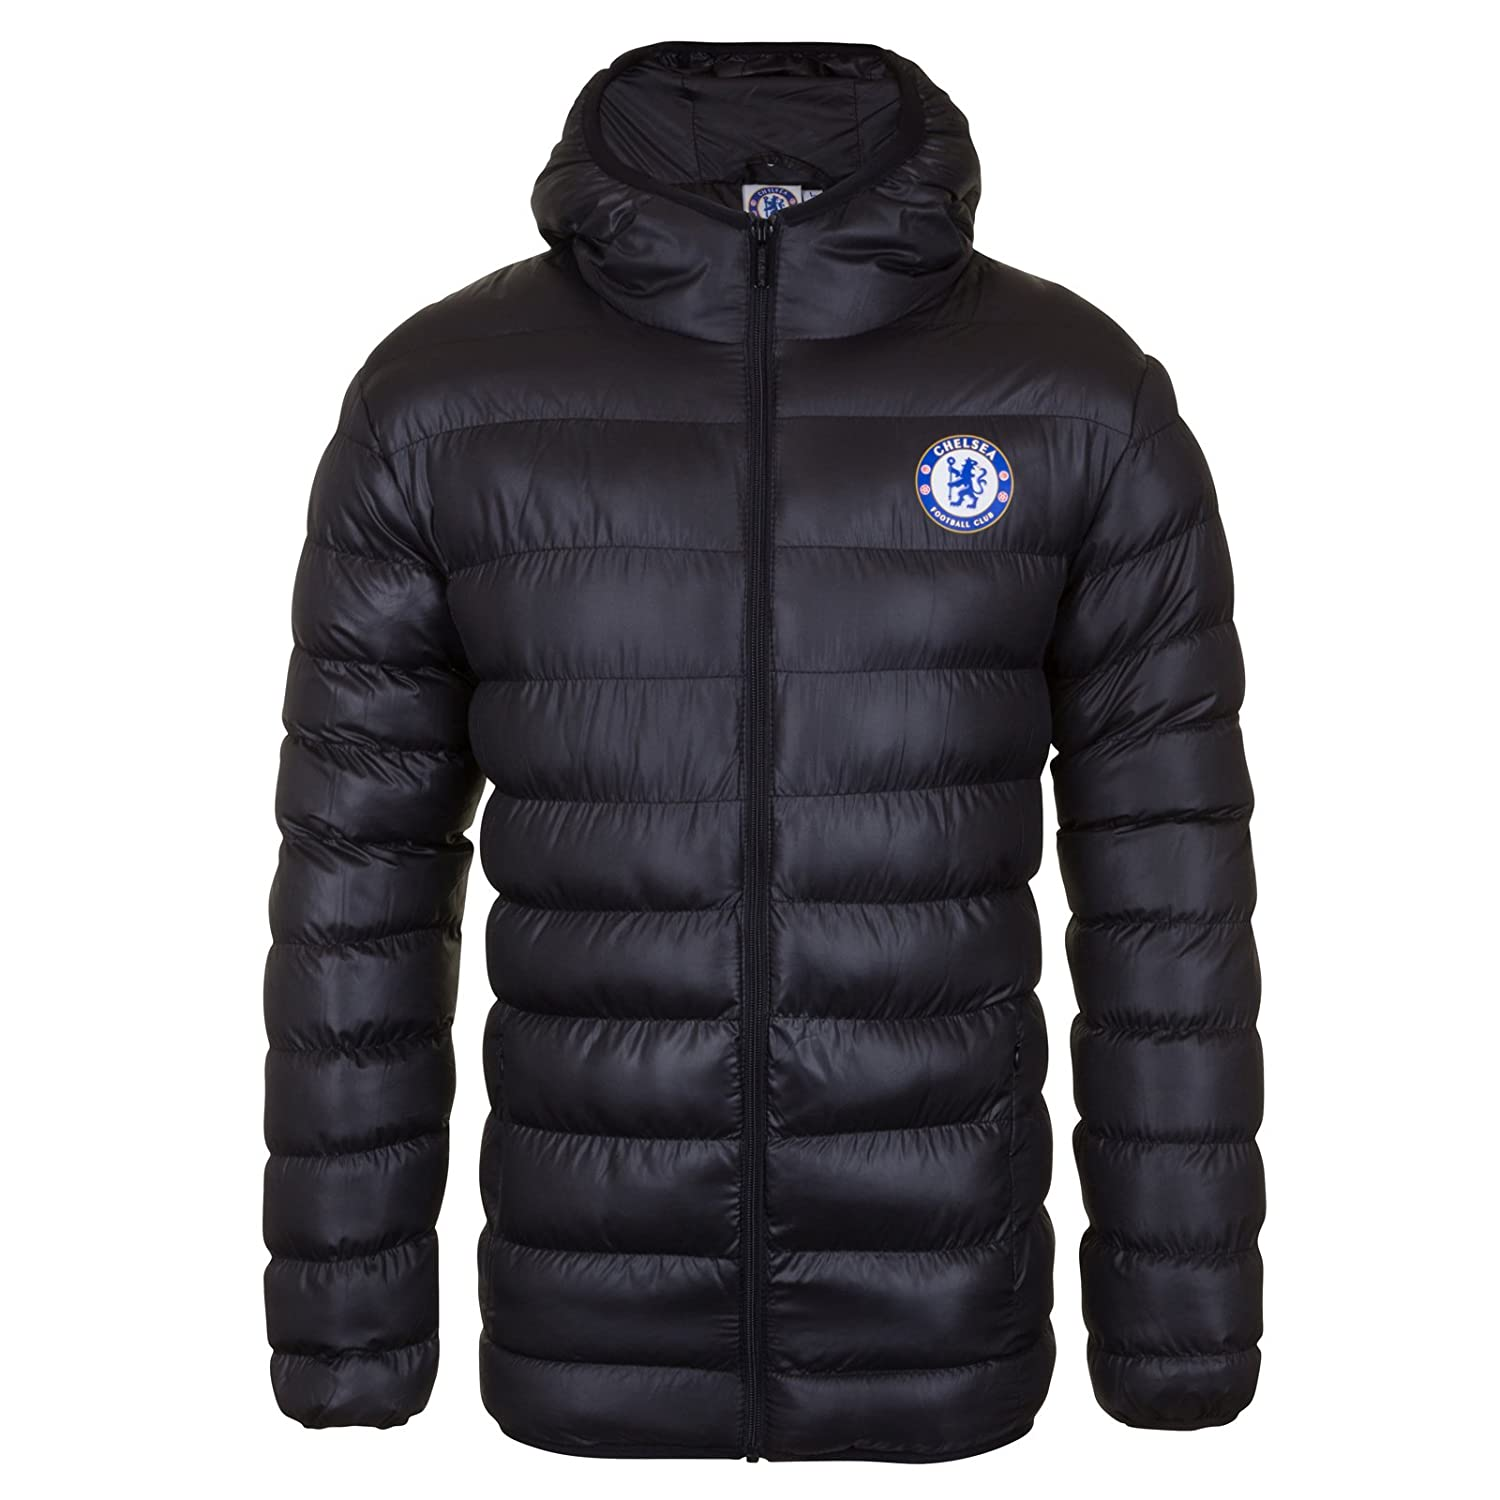 Chelsea FC Official Football Gift Mens Quilted Hooded Winter Jacket